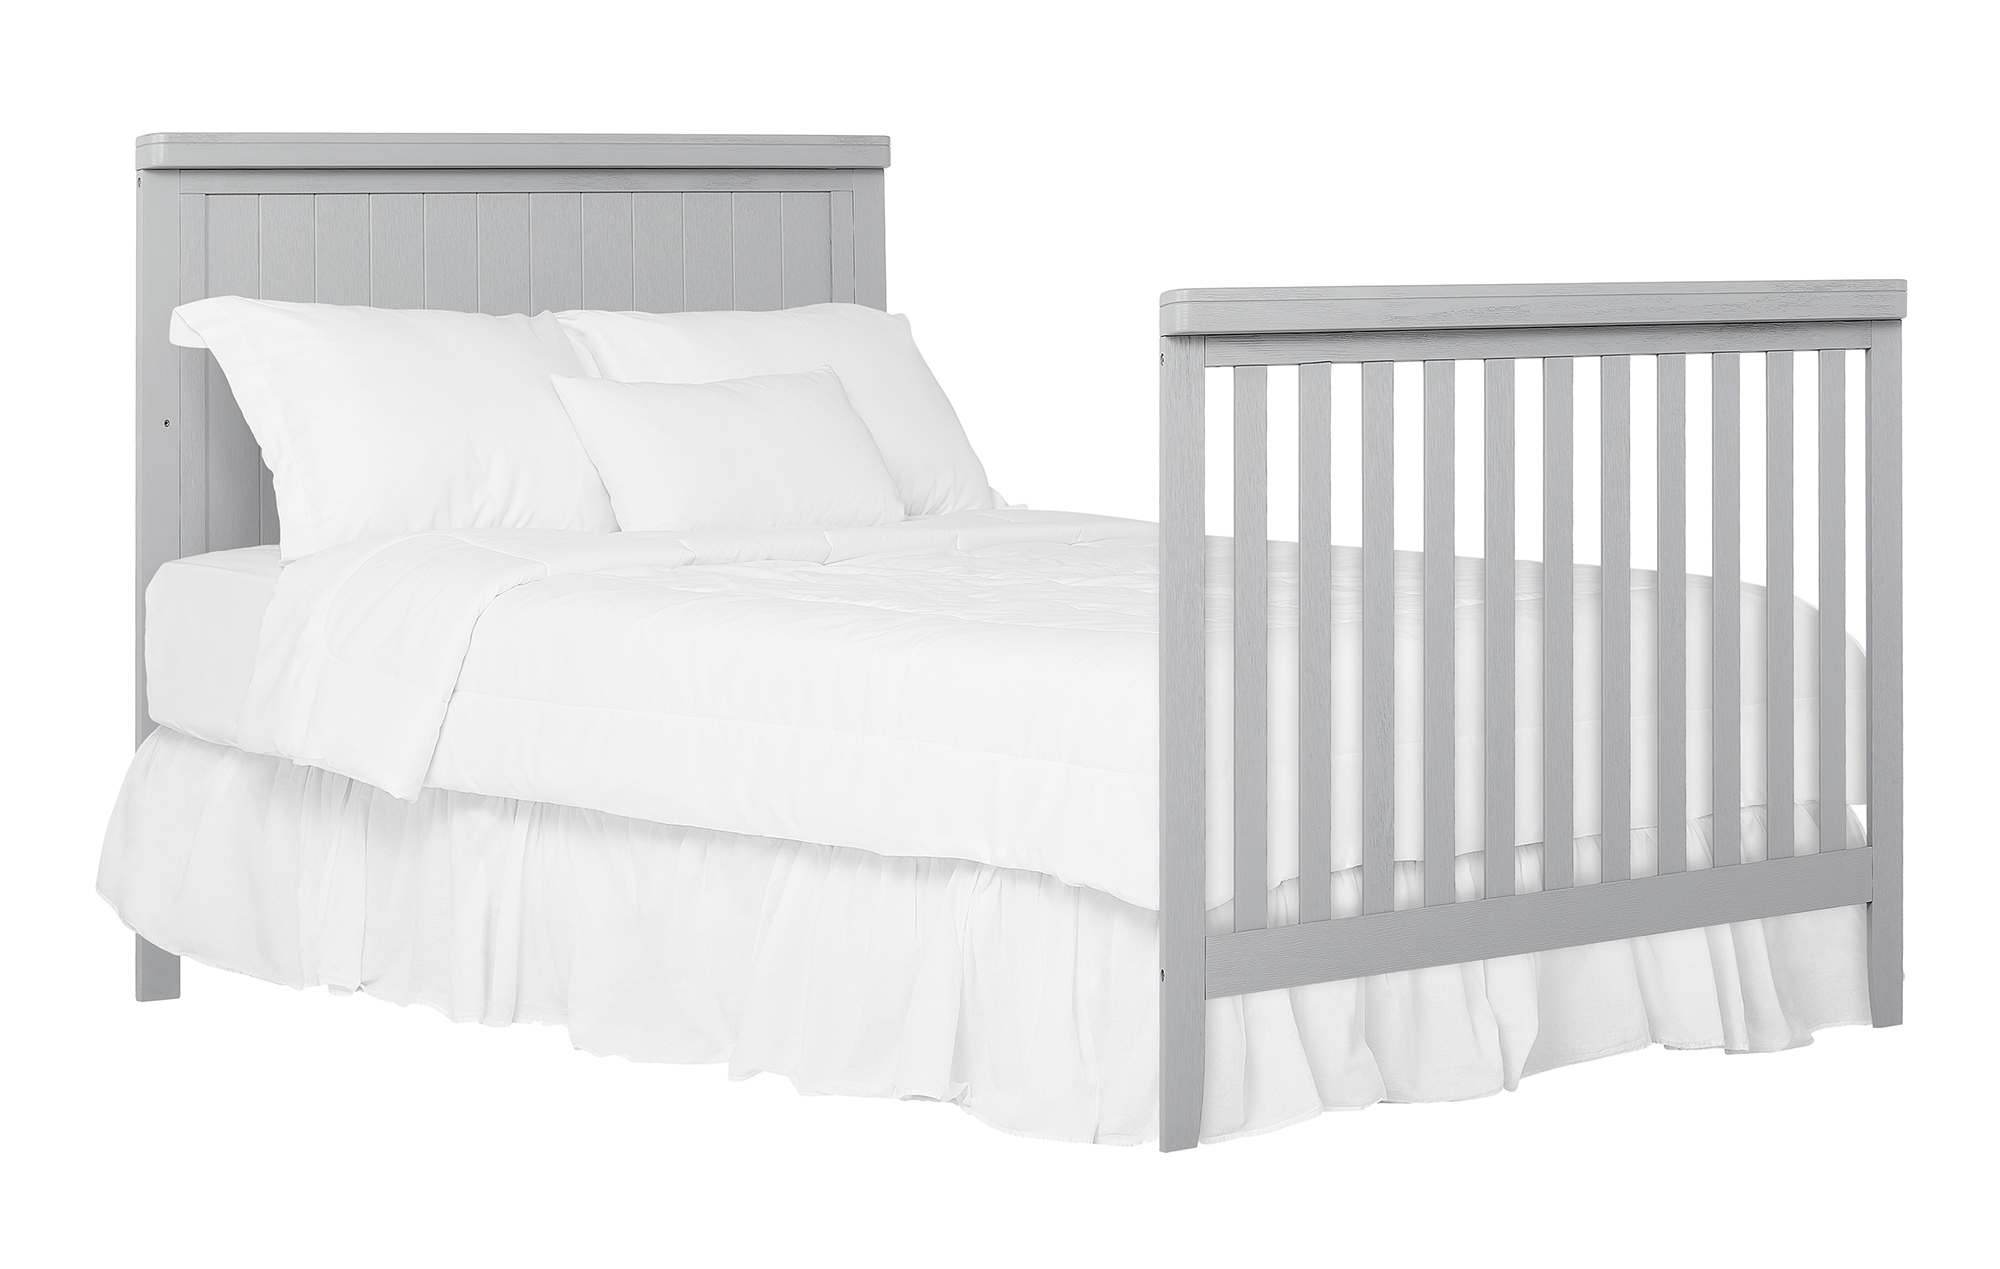 772BR-PG Redwood Crib Full-Size Bed Headfoot